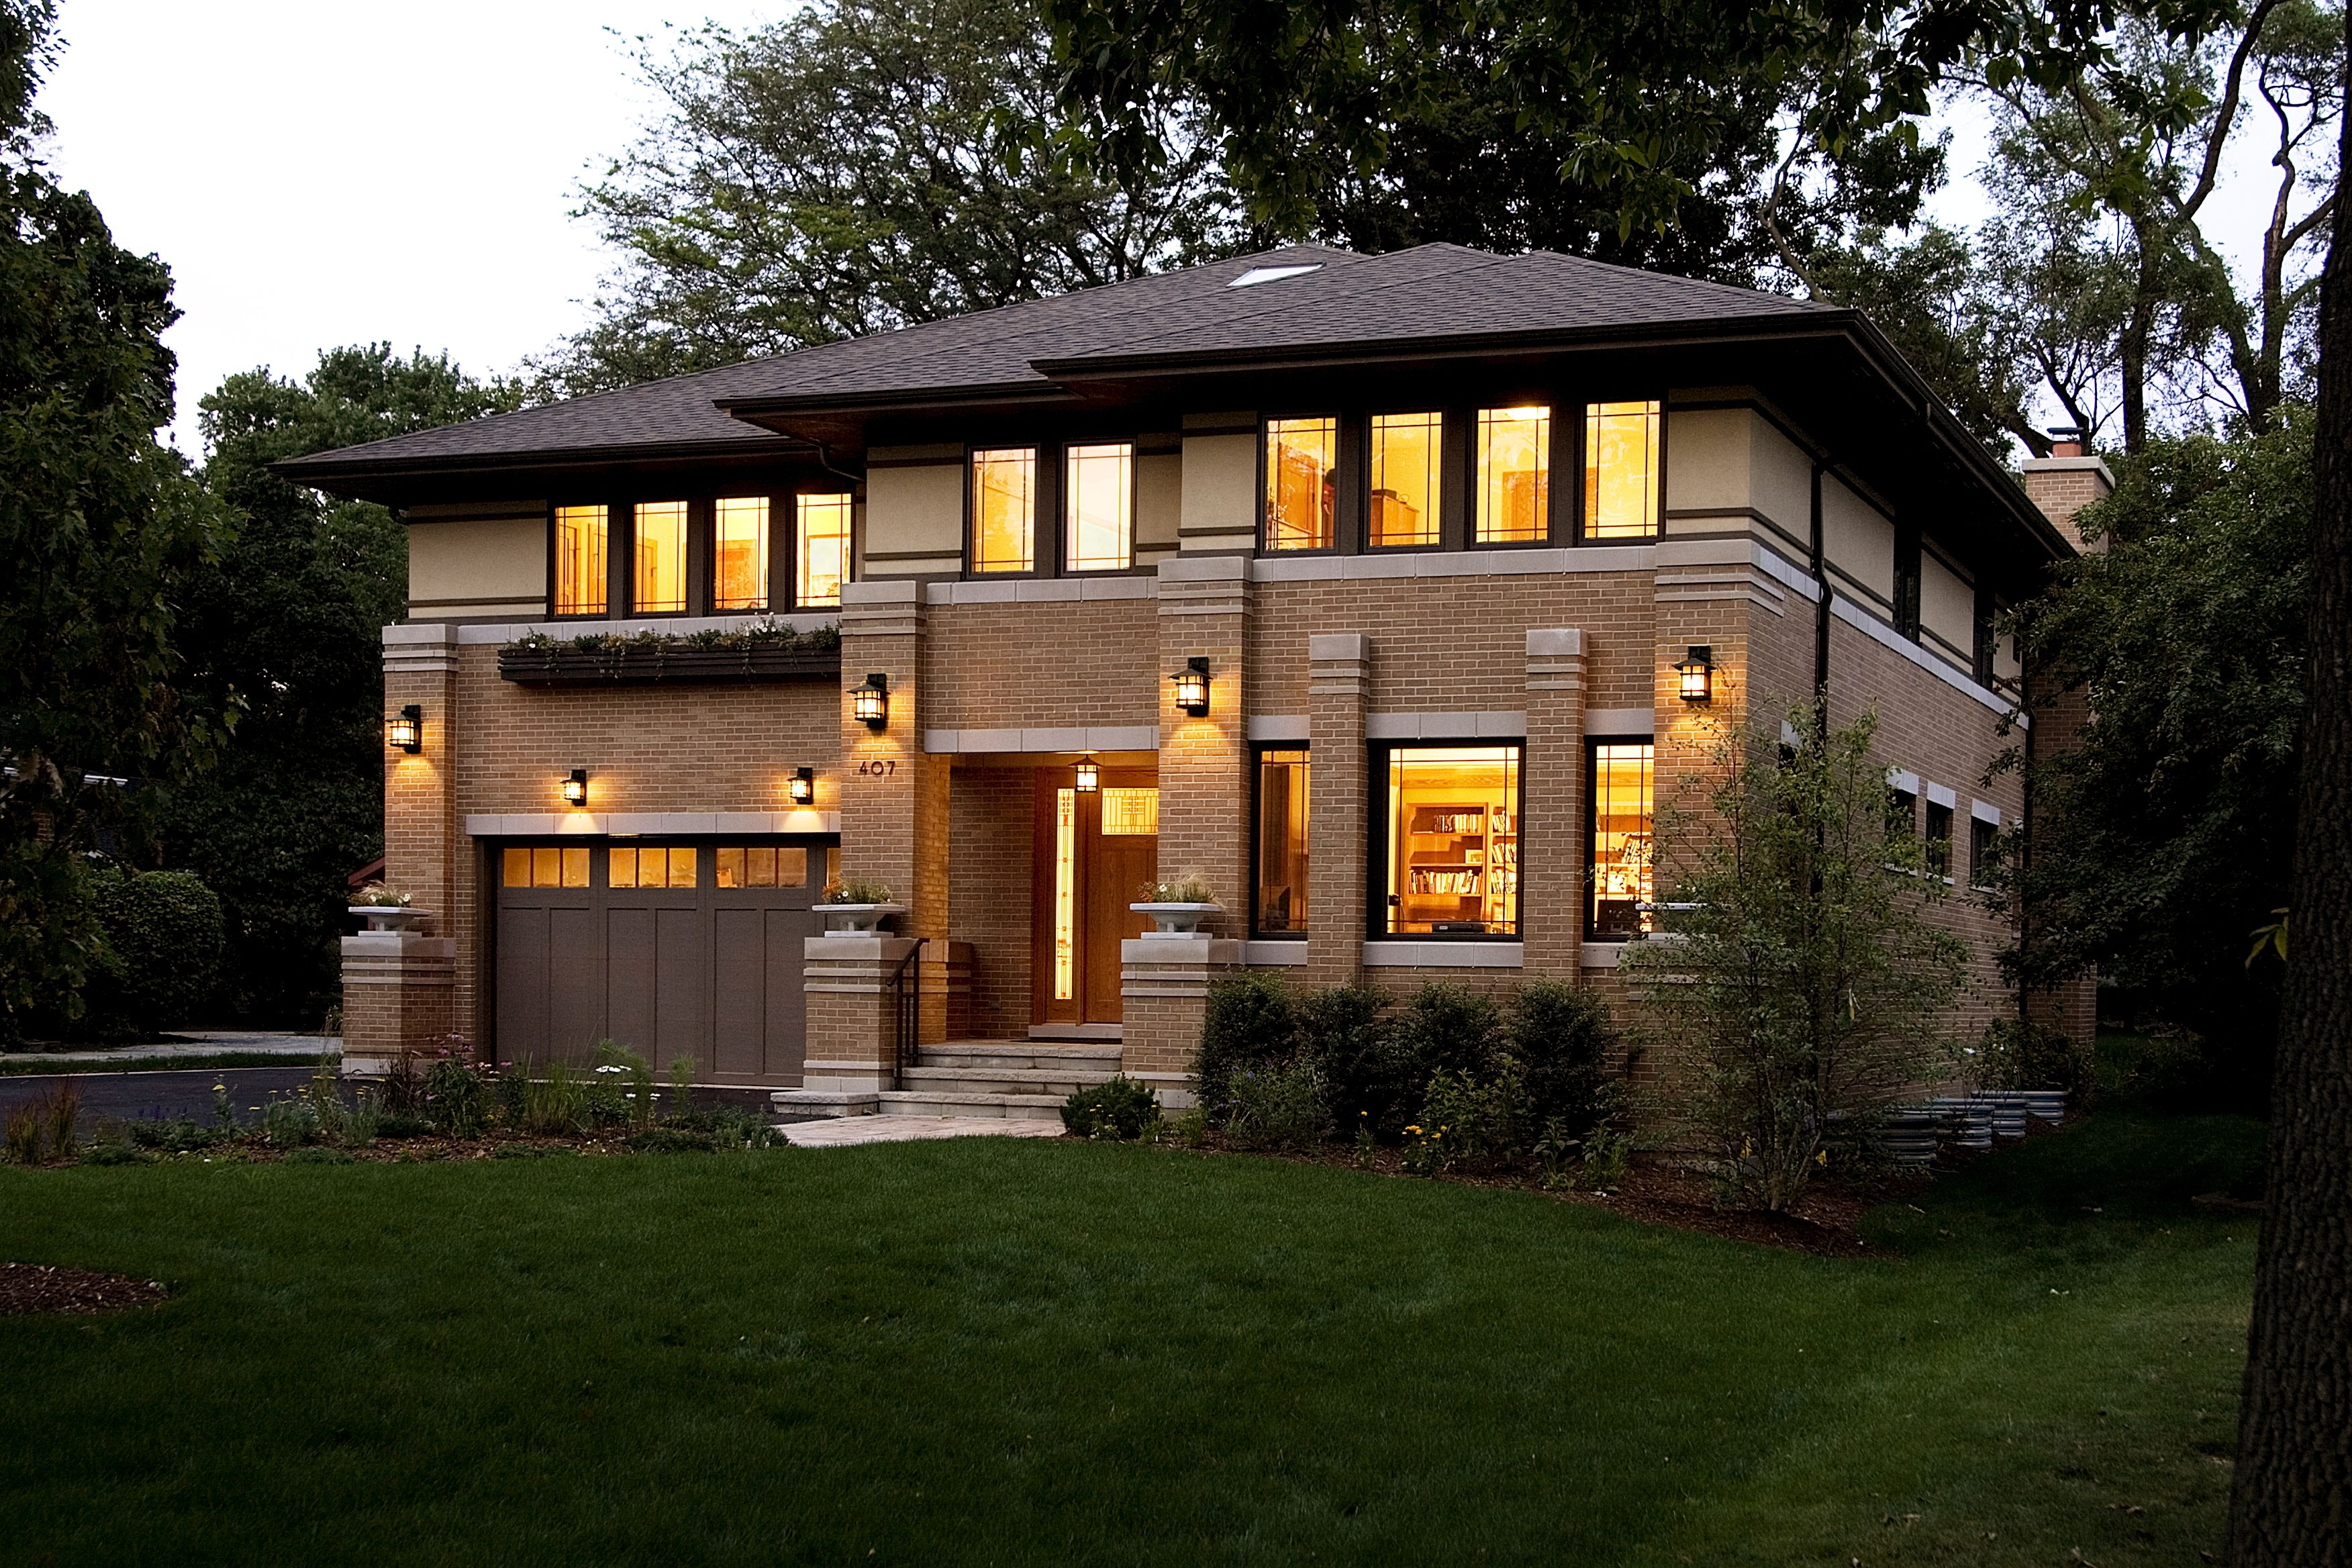 new prairie style house west studio frank lloyd wright inspired - New Homes Styles Design